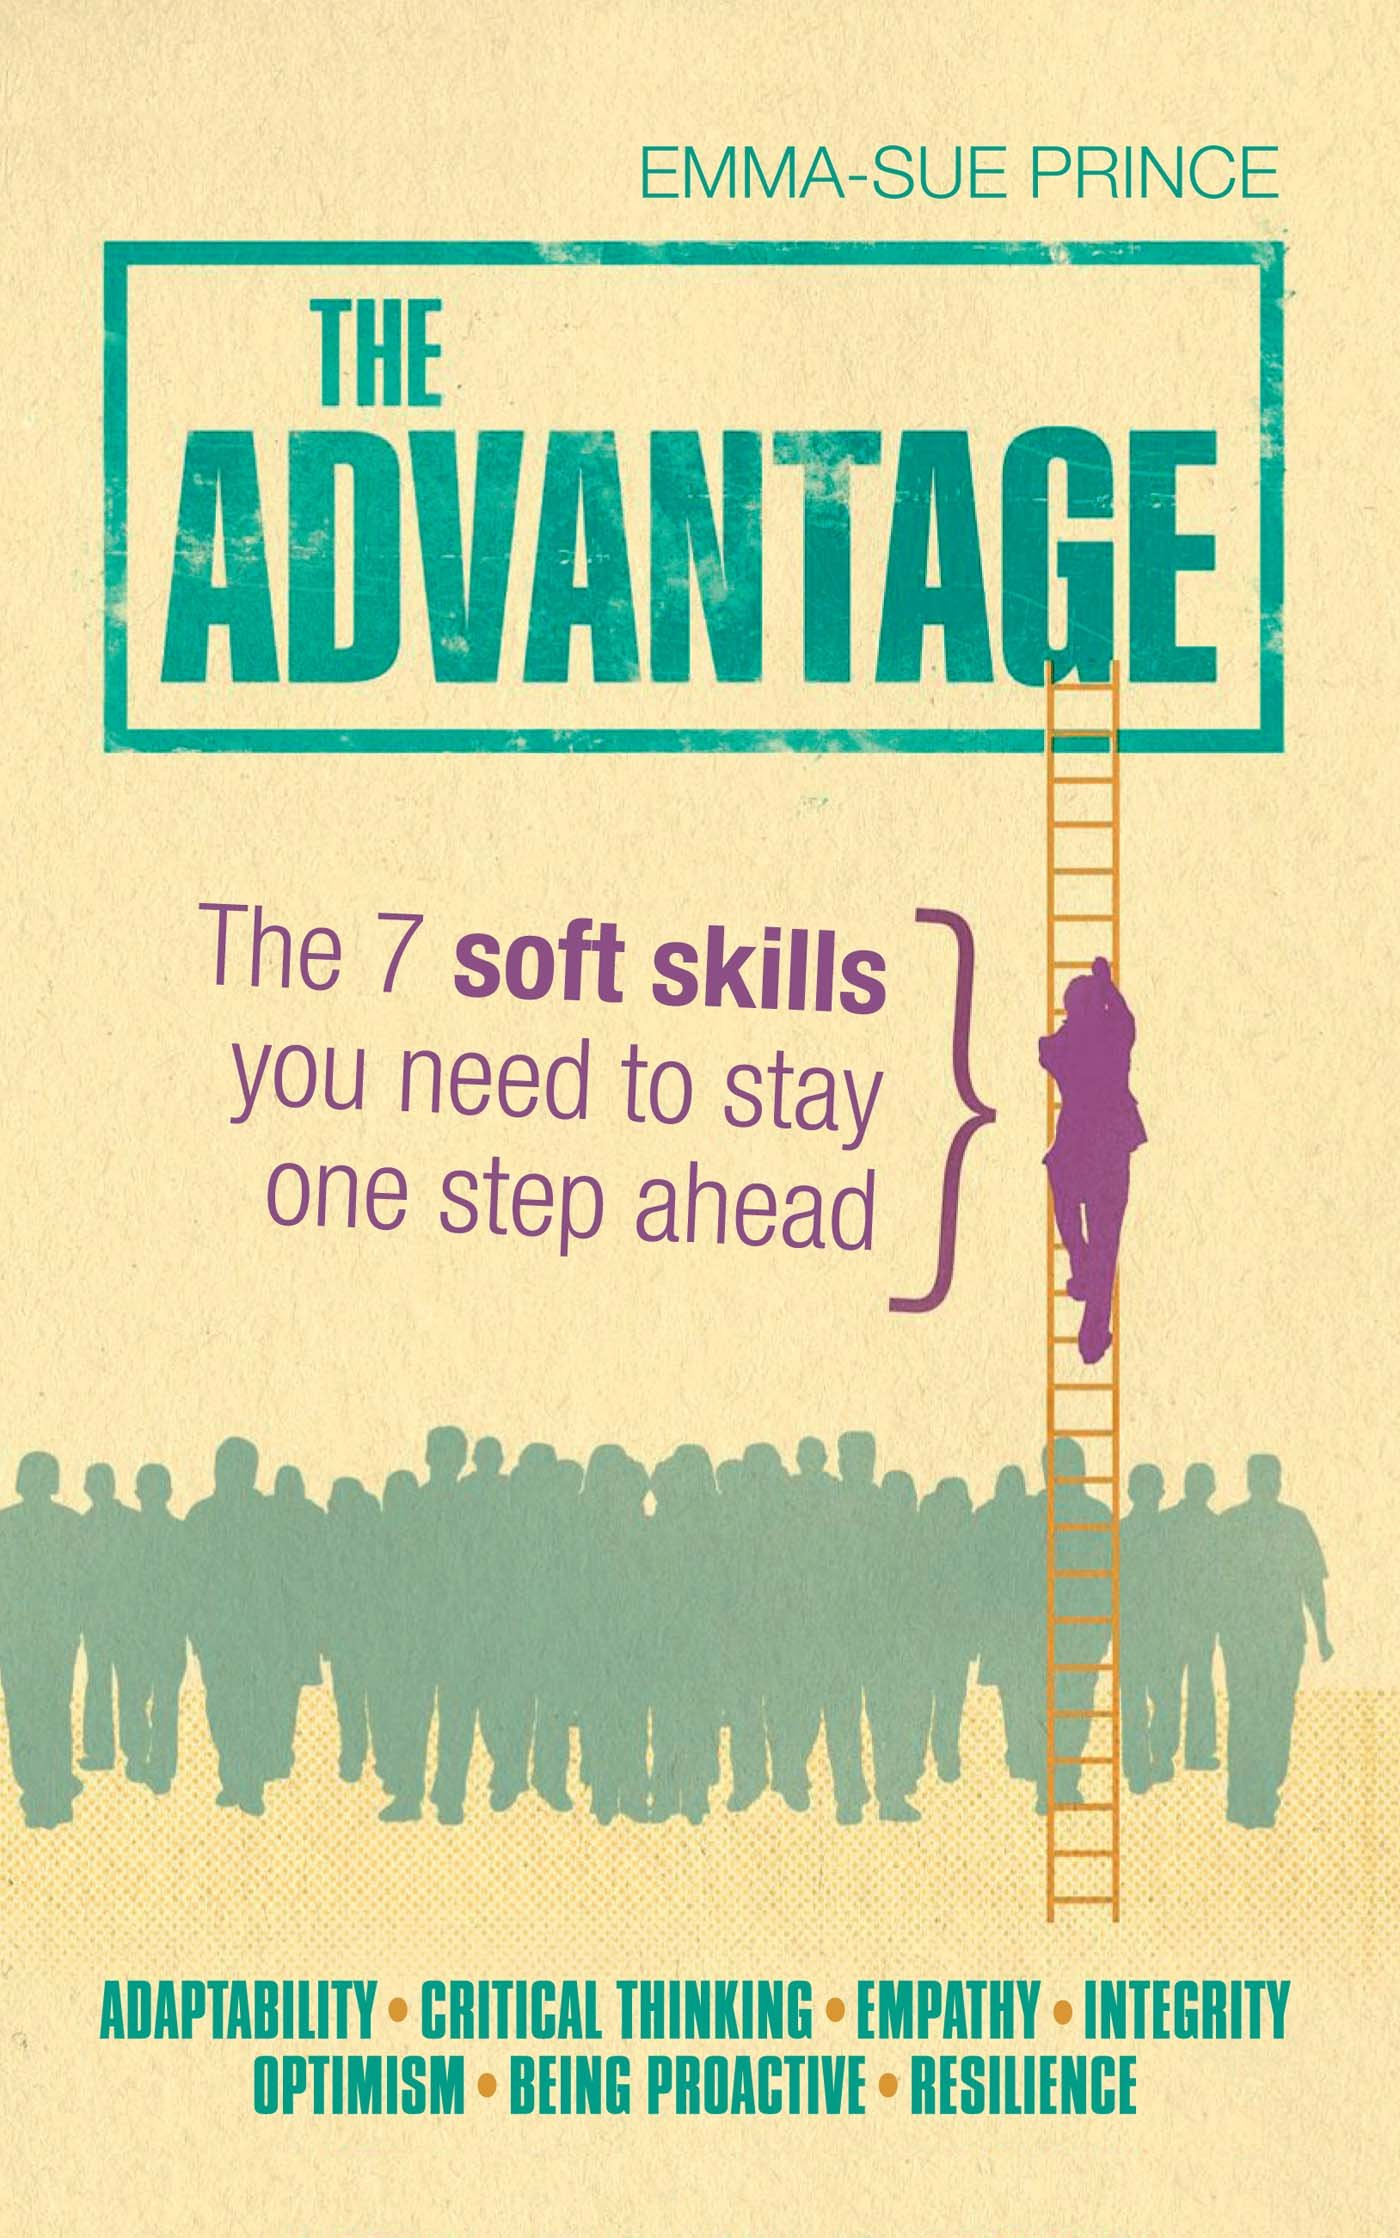 The Advantage: The 7 soft skills you need to stay one step ahead